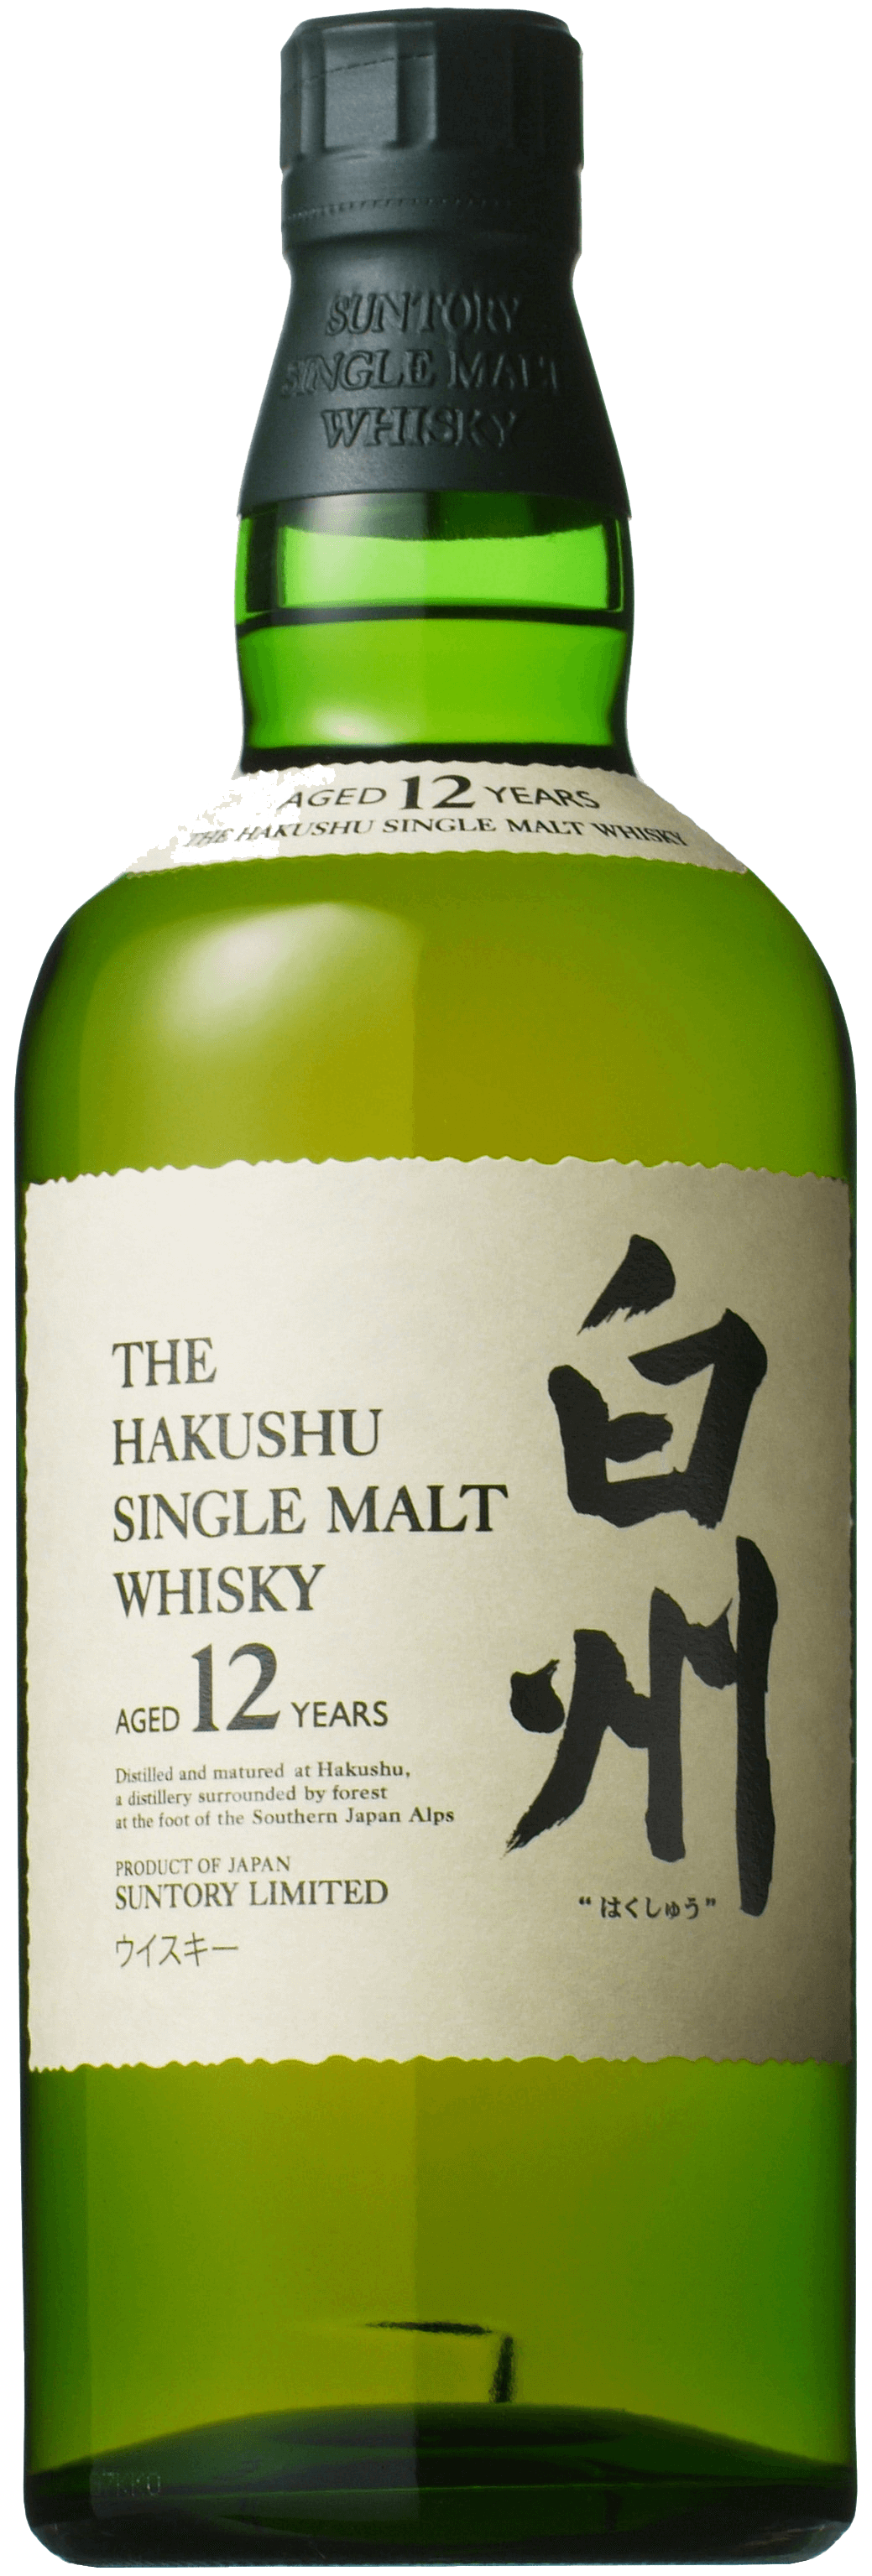 spirits, spirit, alcohol, booze, drinks, drinking, cocktail, cocktails, vodka, gin, martini, rum, bar, bars, element 29, low calorie, healthy, mixer, tonic, lime, delicious, ice, lemon, pink pigeon, summer, summer drinks, bbq, kings ginger, japanese, suntory hakushu